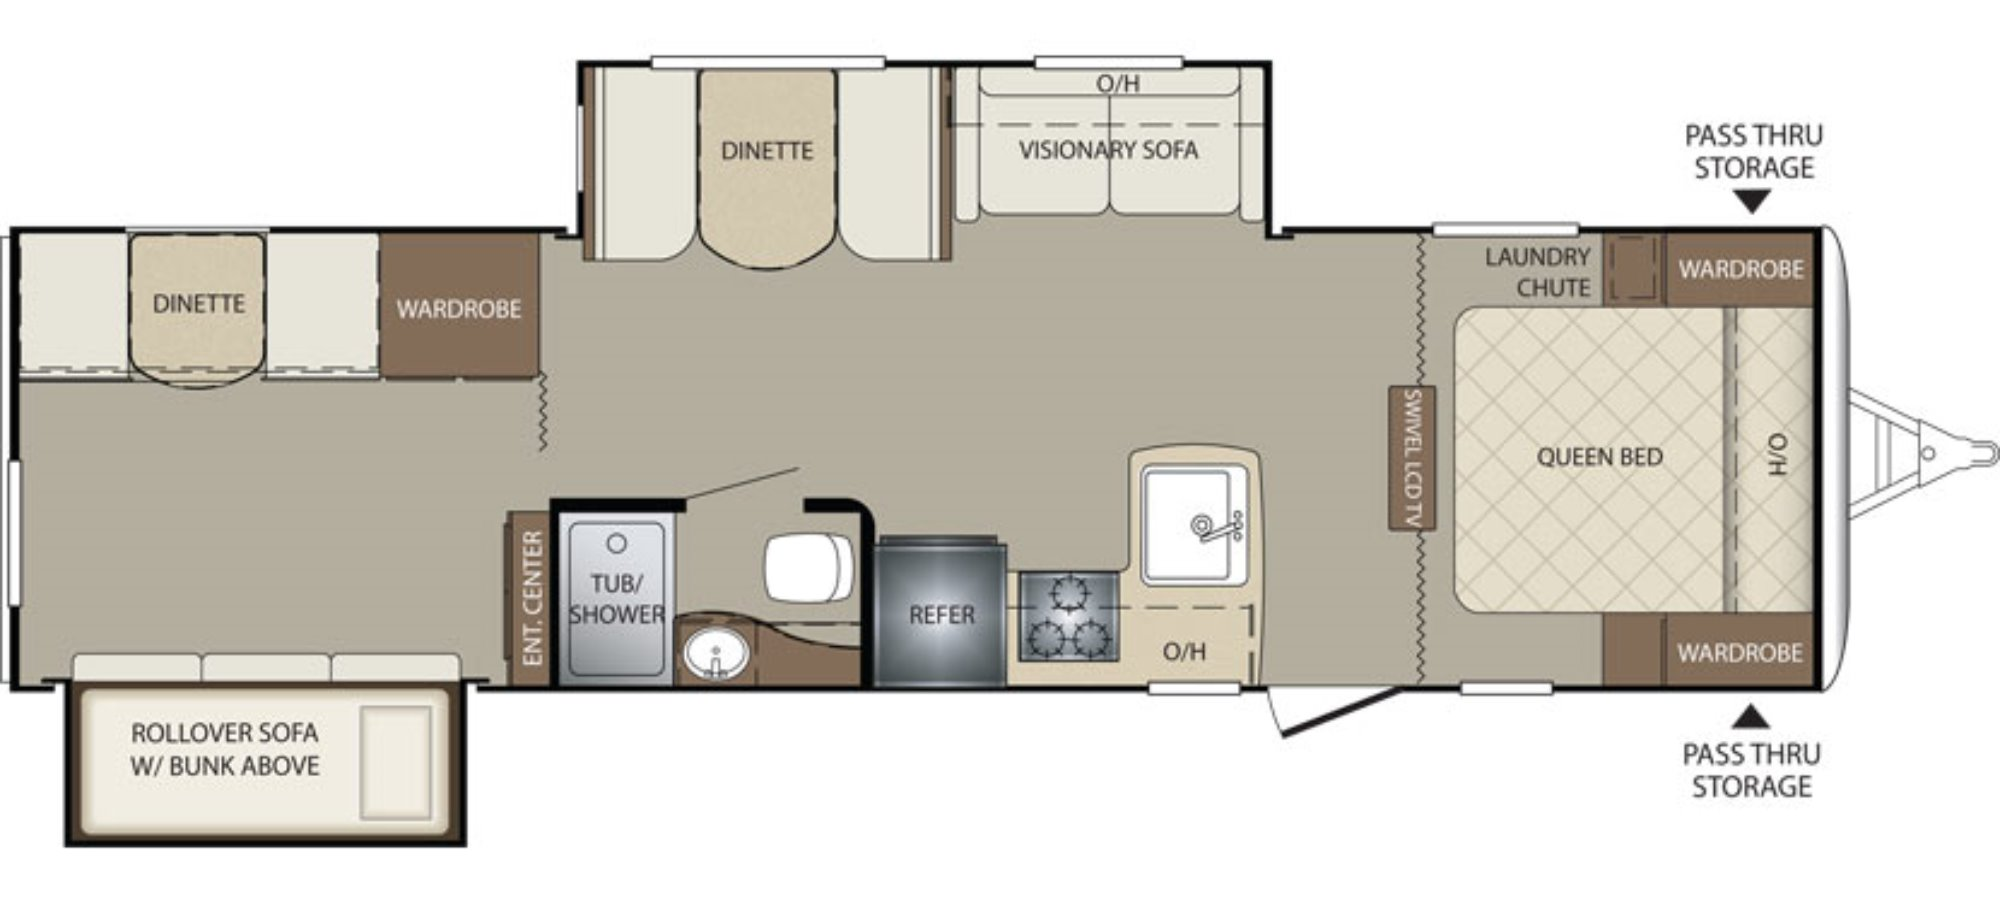 ... Travel Trailer Floor Plans With Bunk Beds likewise Keystone Bullet